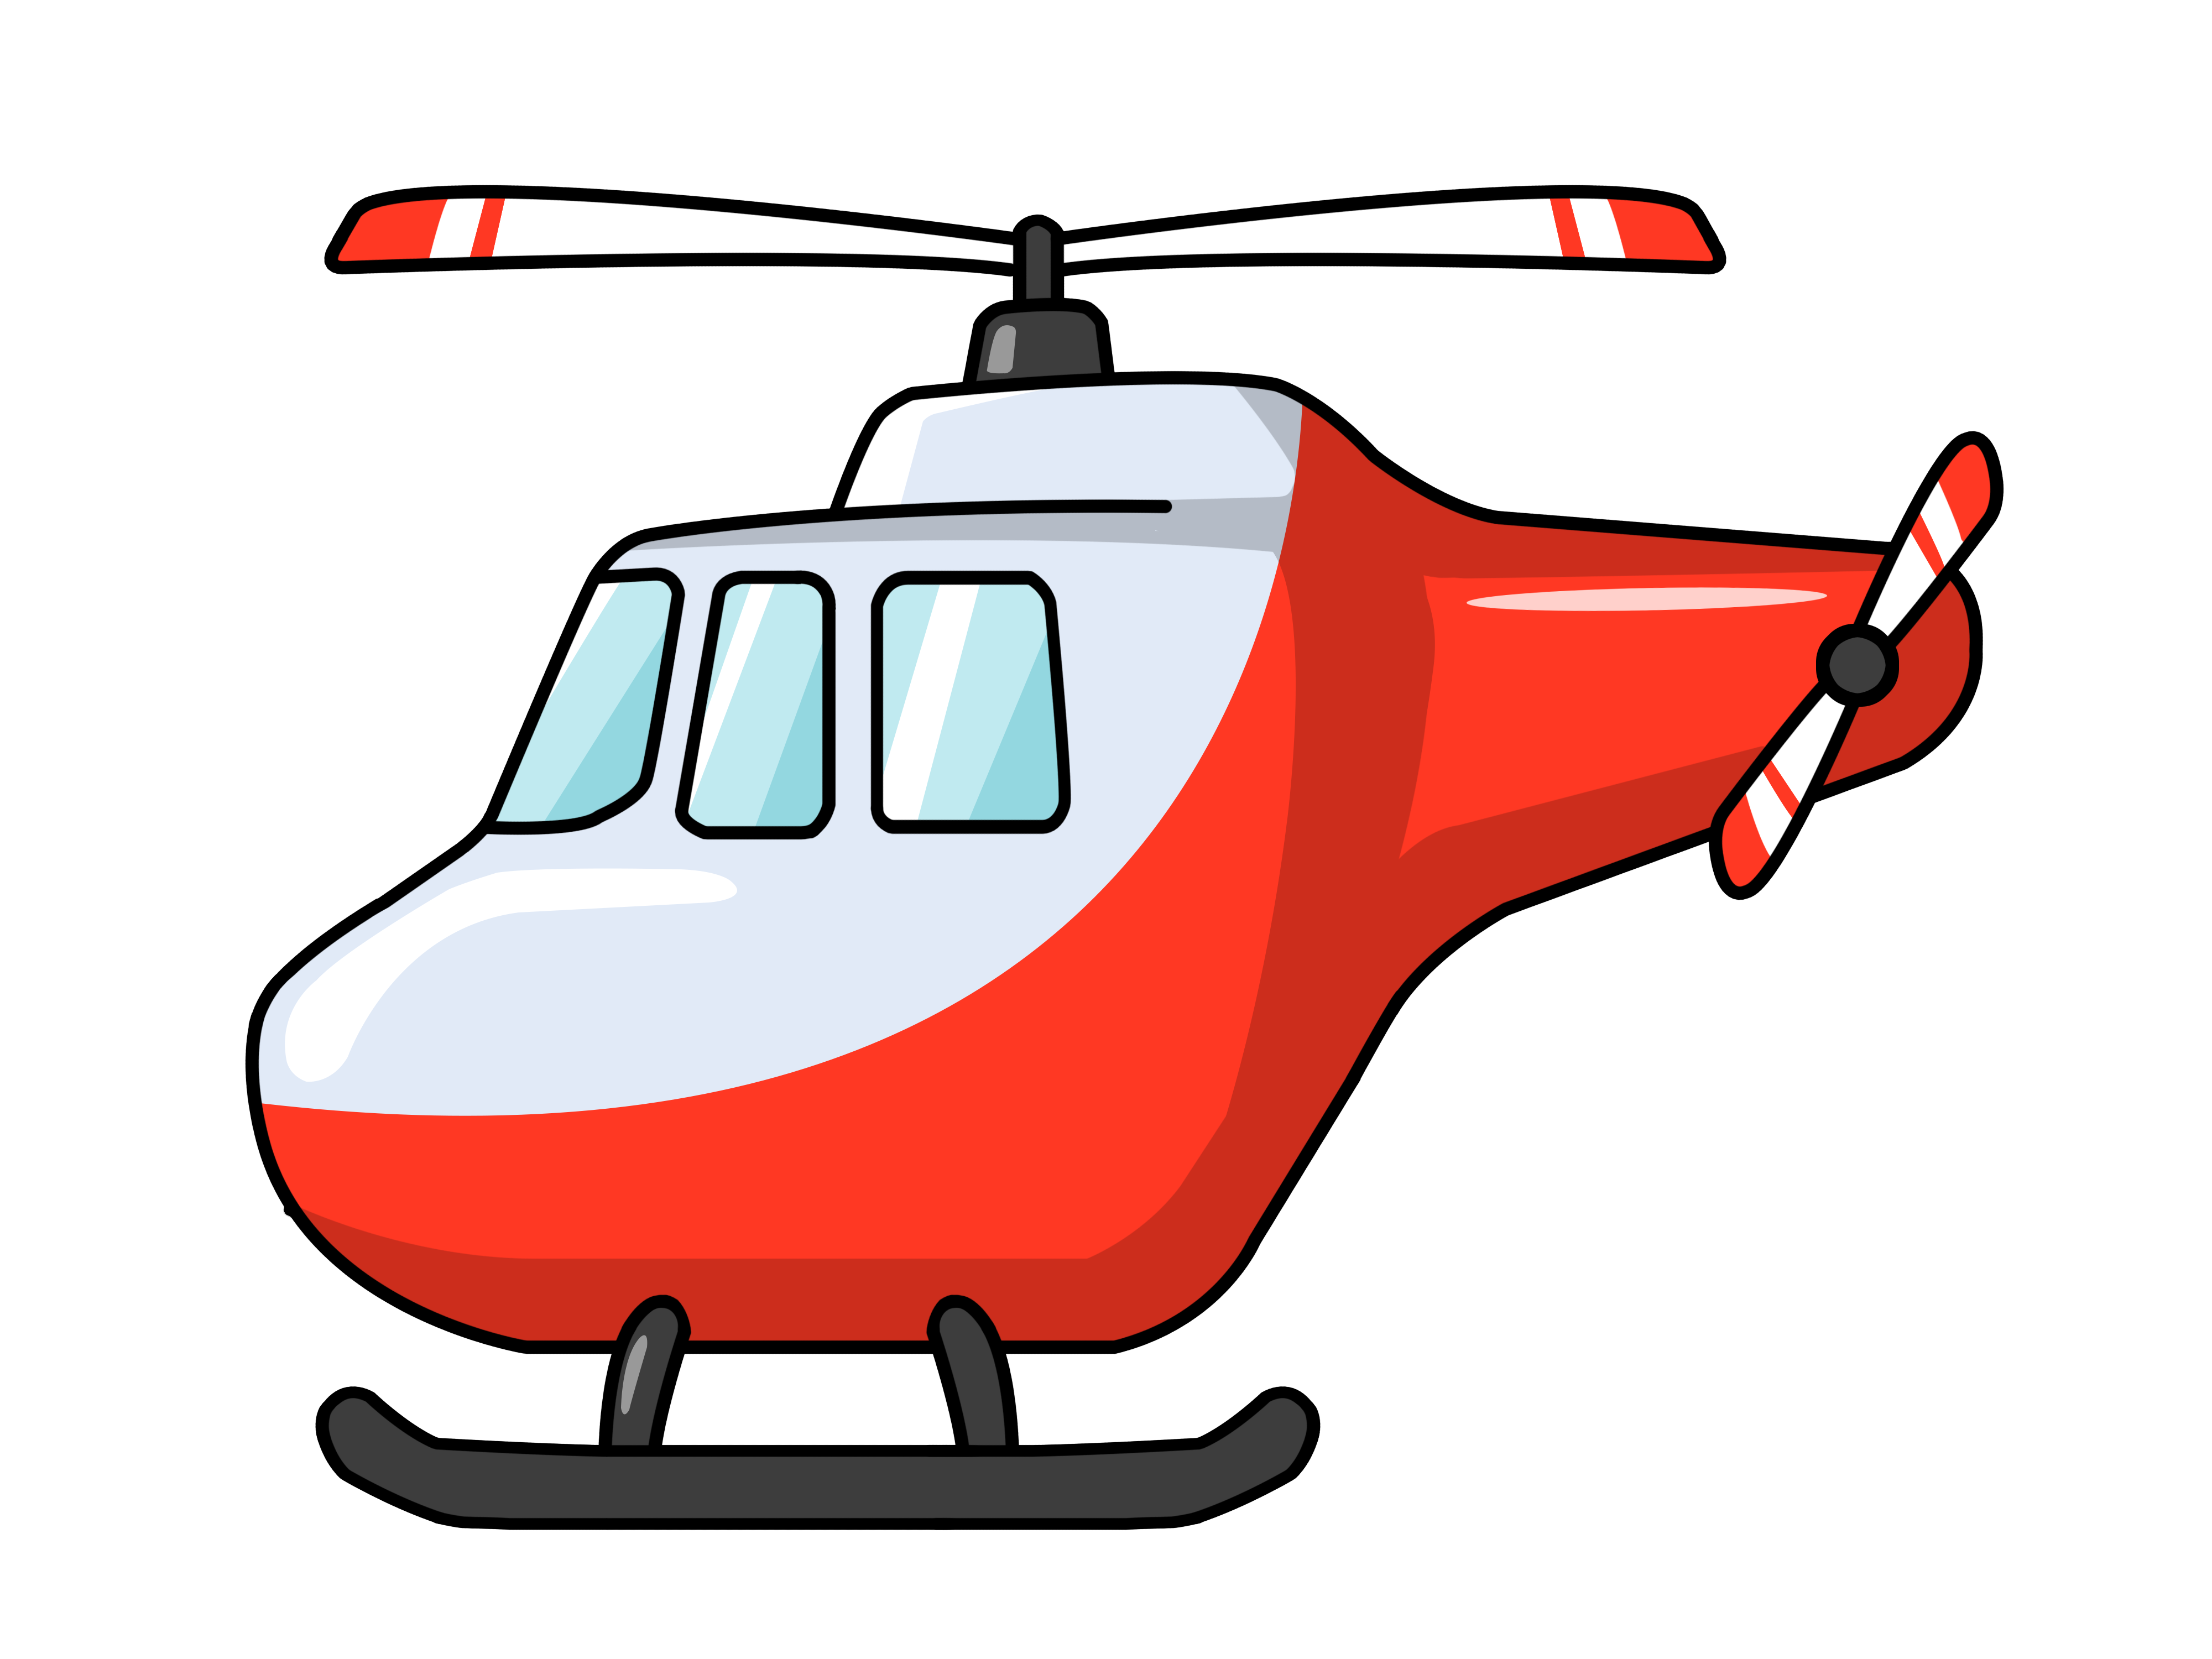 Clip Art Transportation Helicopter Clipart - Clipart Kid